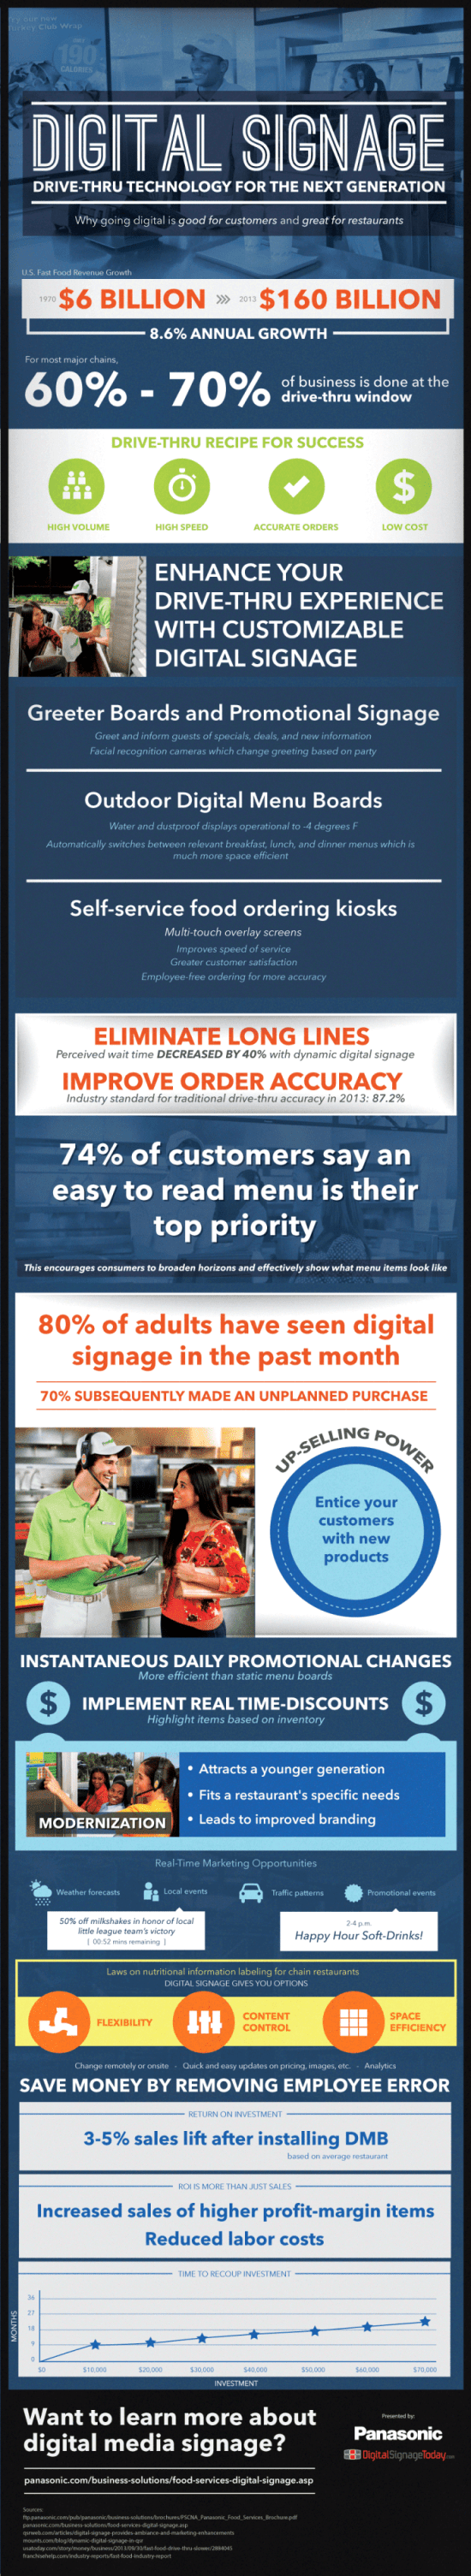 Digital-Signage-Drive-thru-Technology-for-the-Next-Generation